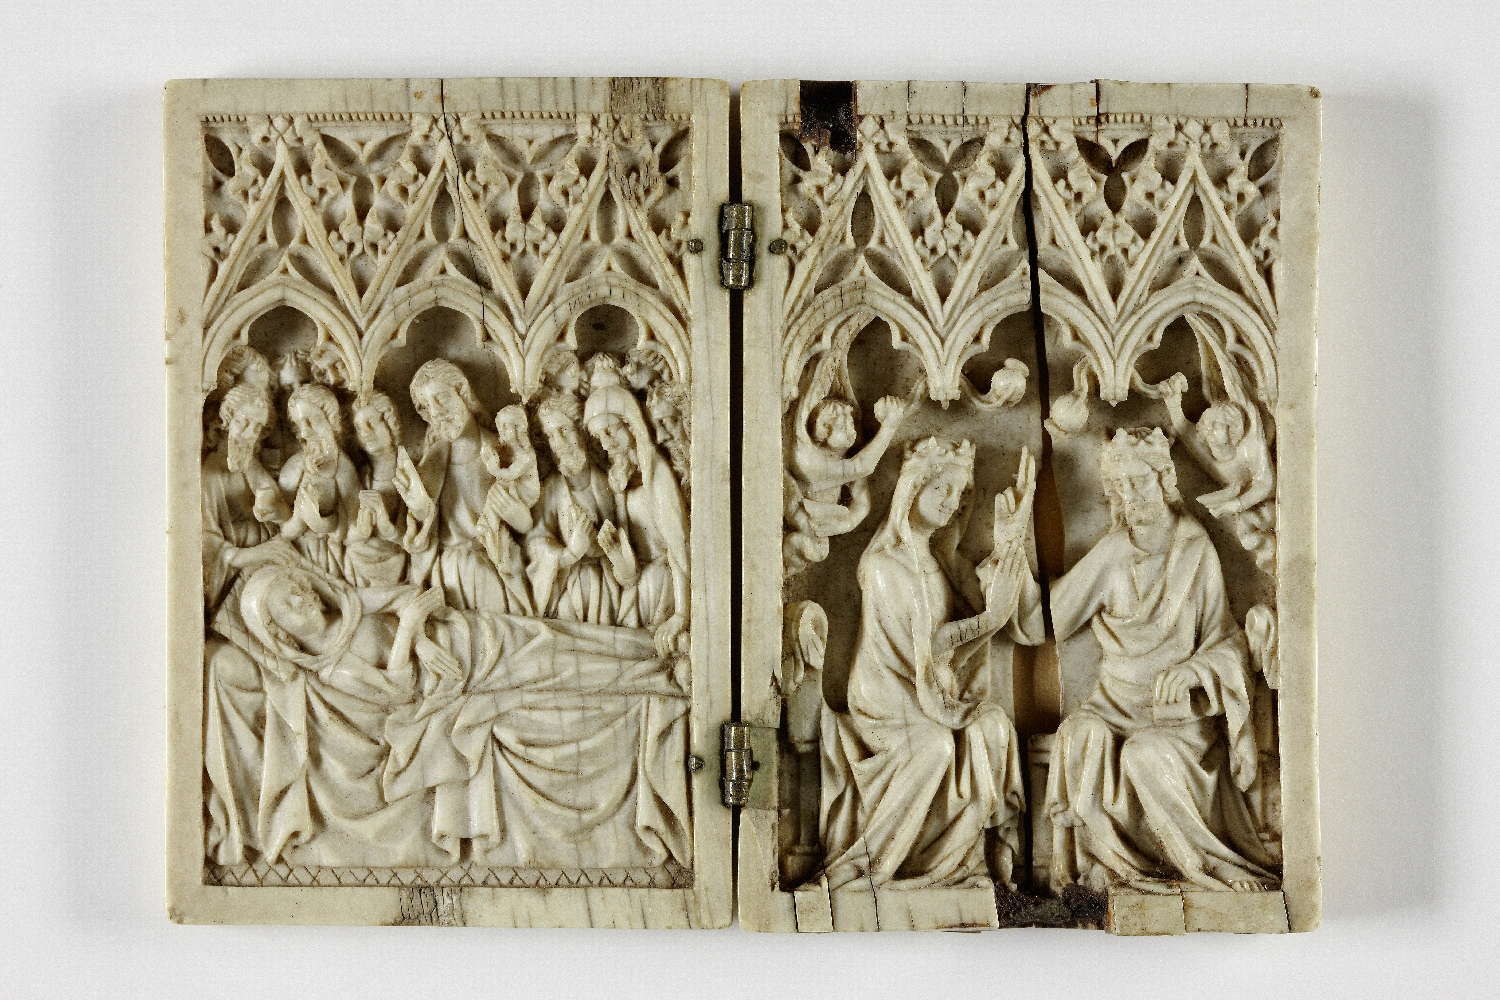 Diptych with portrayals of the Crowning of the Virgin Mary and Dormition of the Virgin, region of Maas or Central Rhine, ca. 1350, ivory, brass, inv. no. 20-32